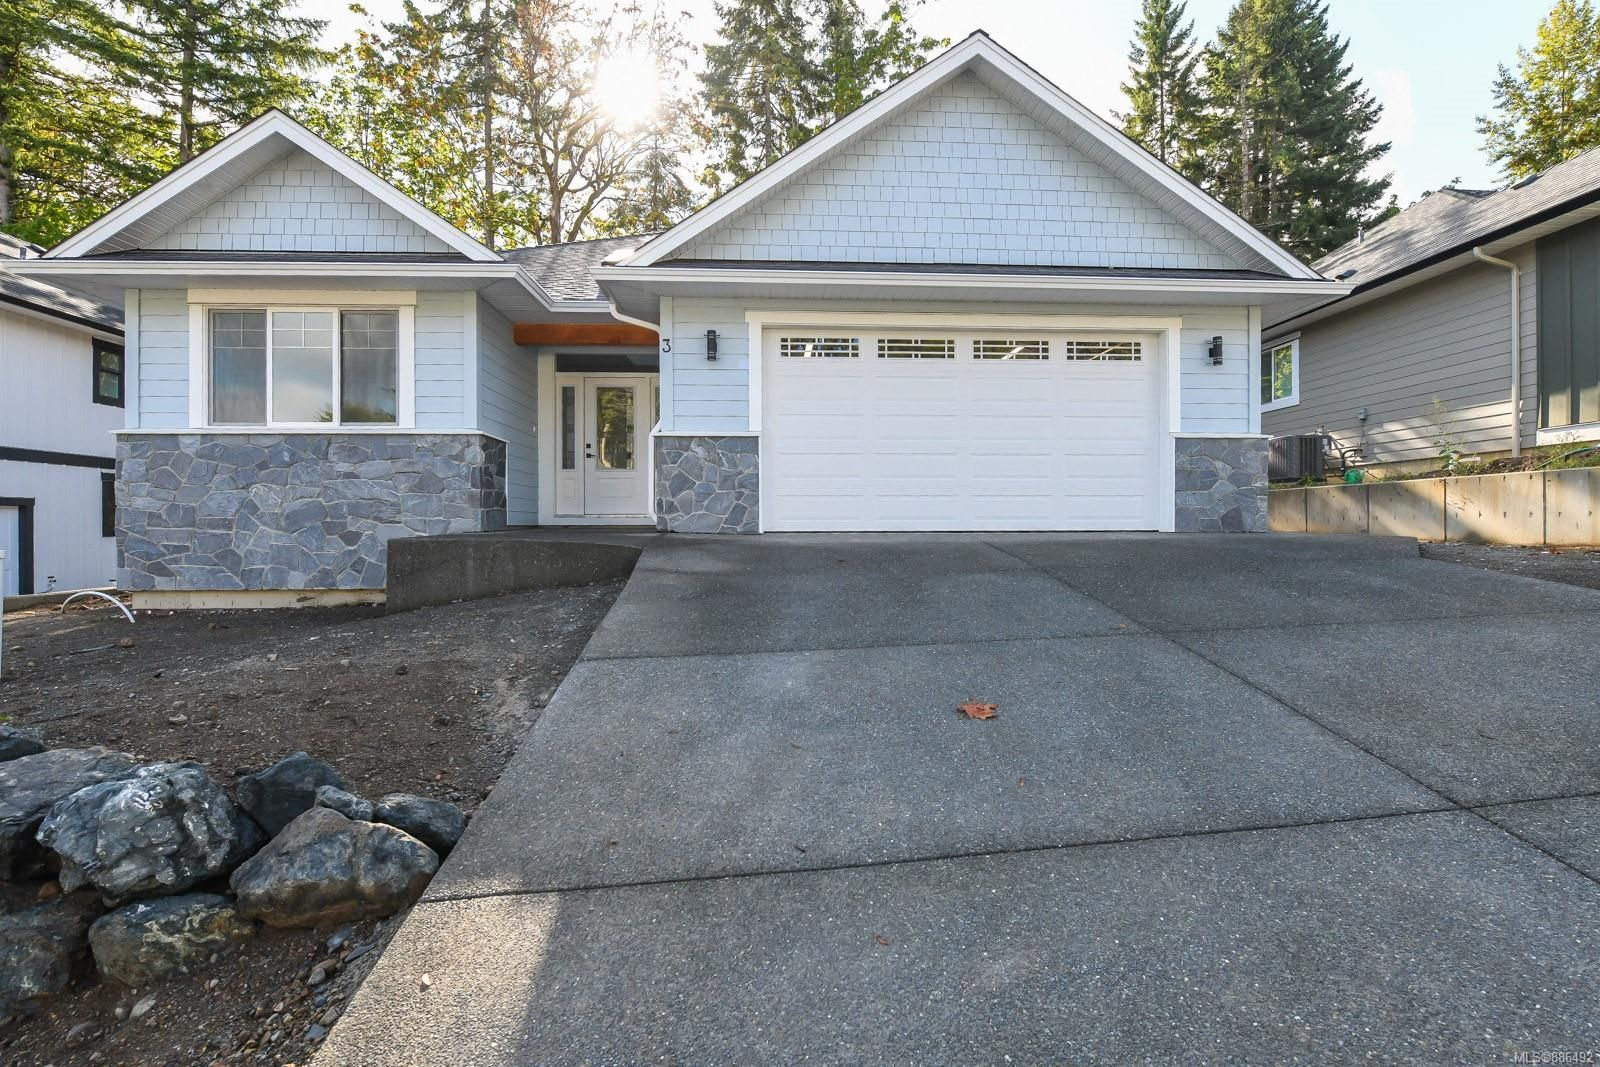 Main Photo: 3 2880 Arden Rd in : CV Courtenay City House for sale (Comox Valley)  : MLS®# 886492